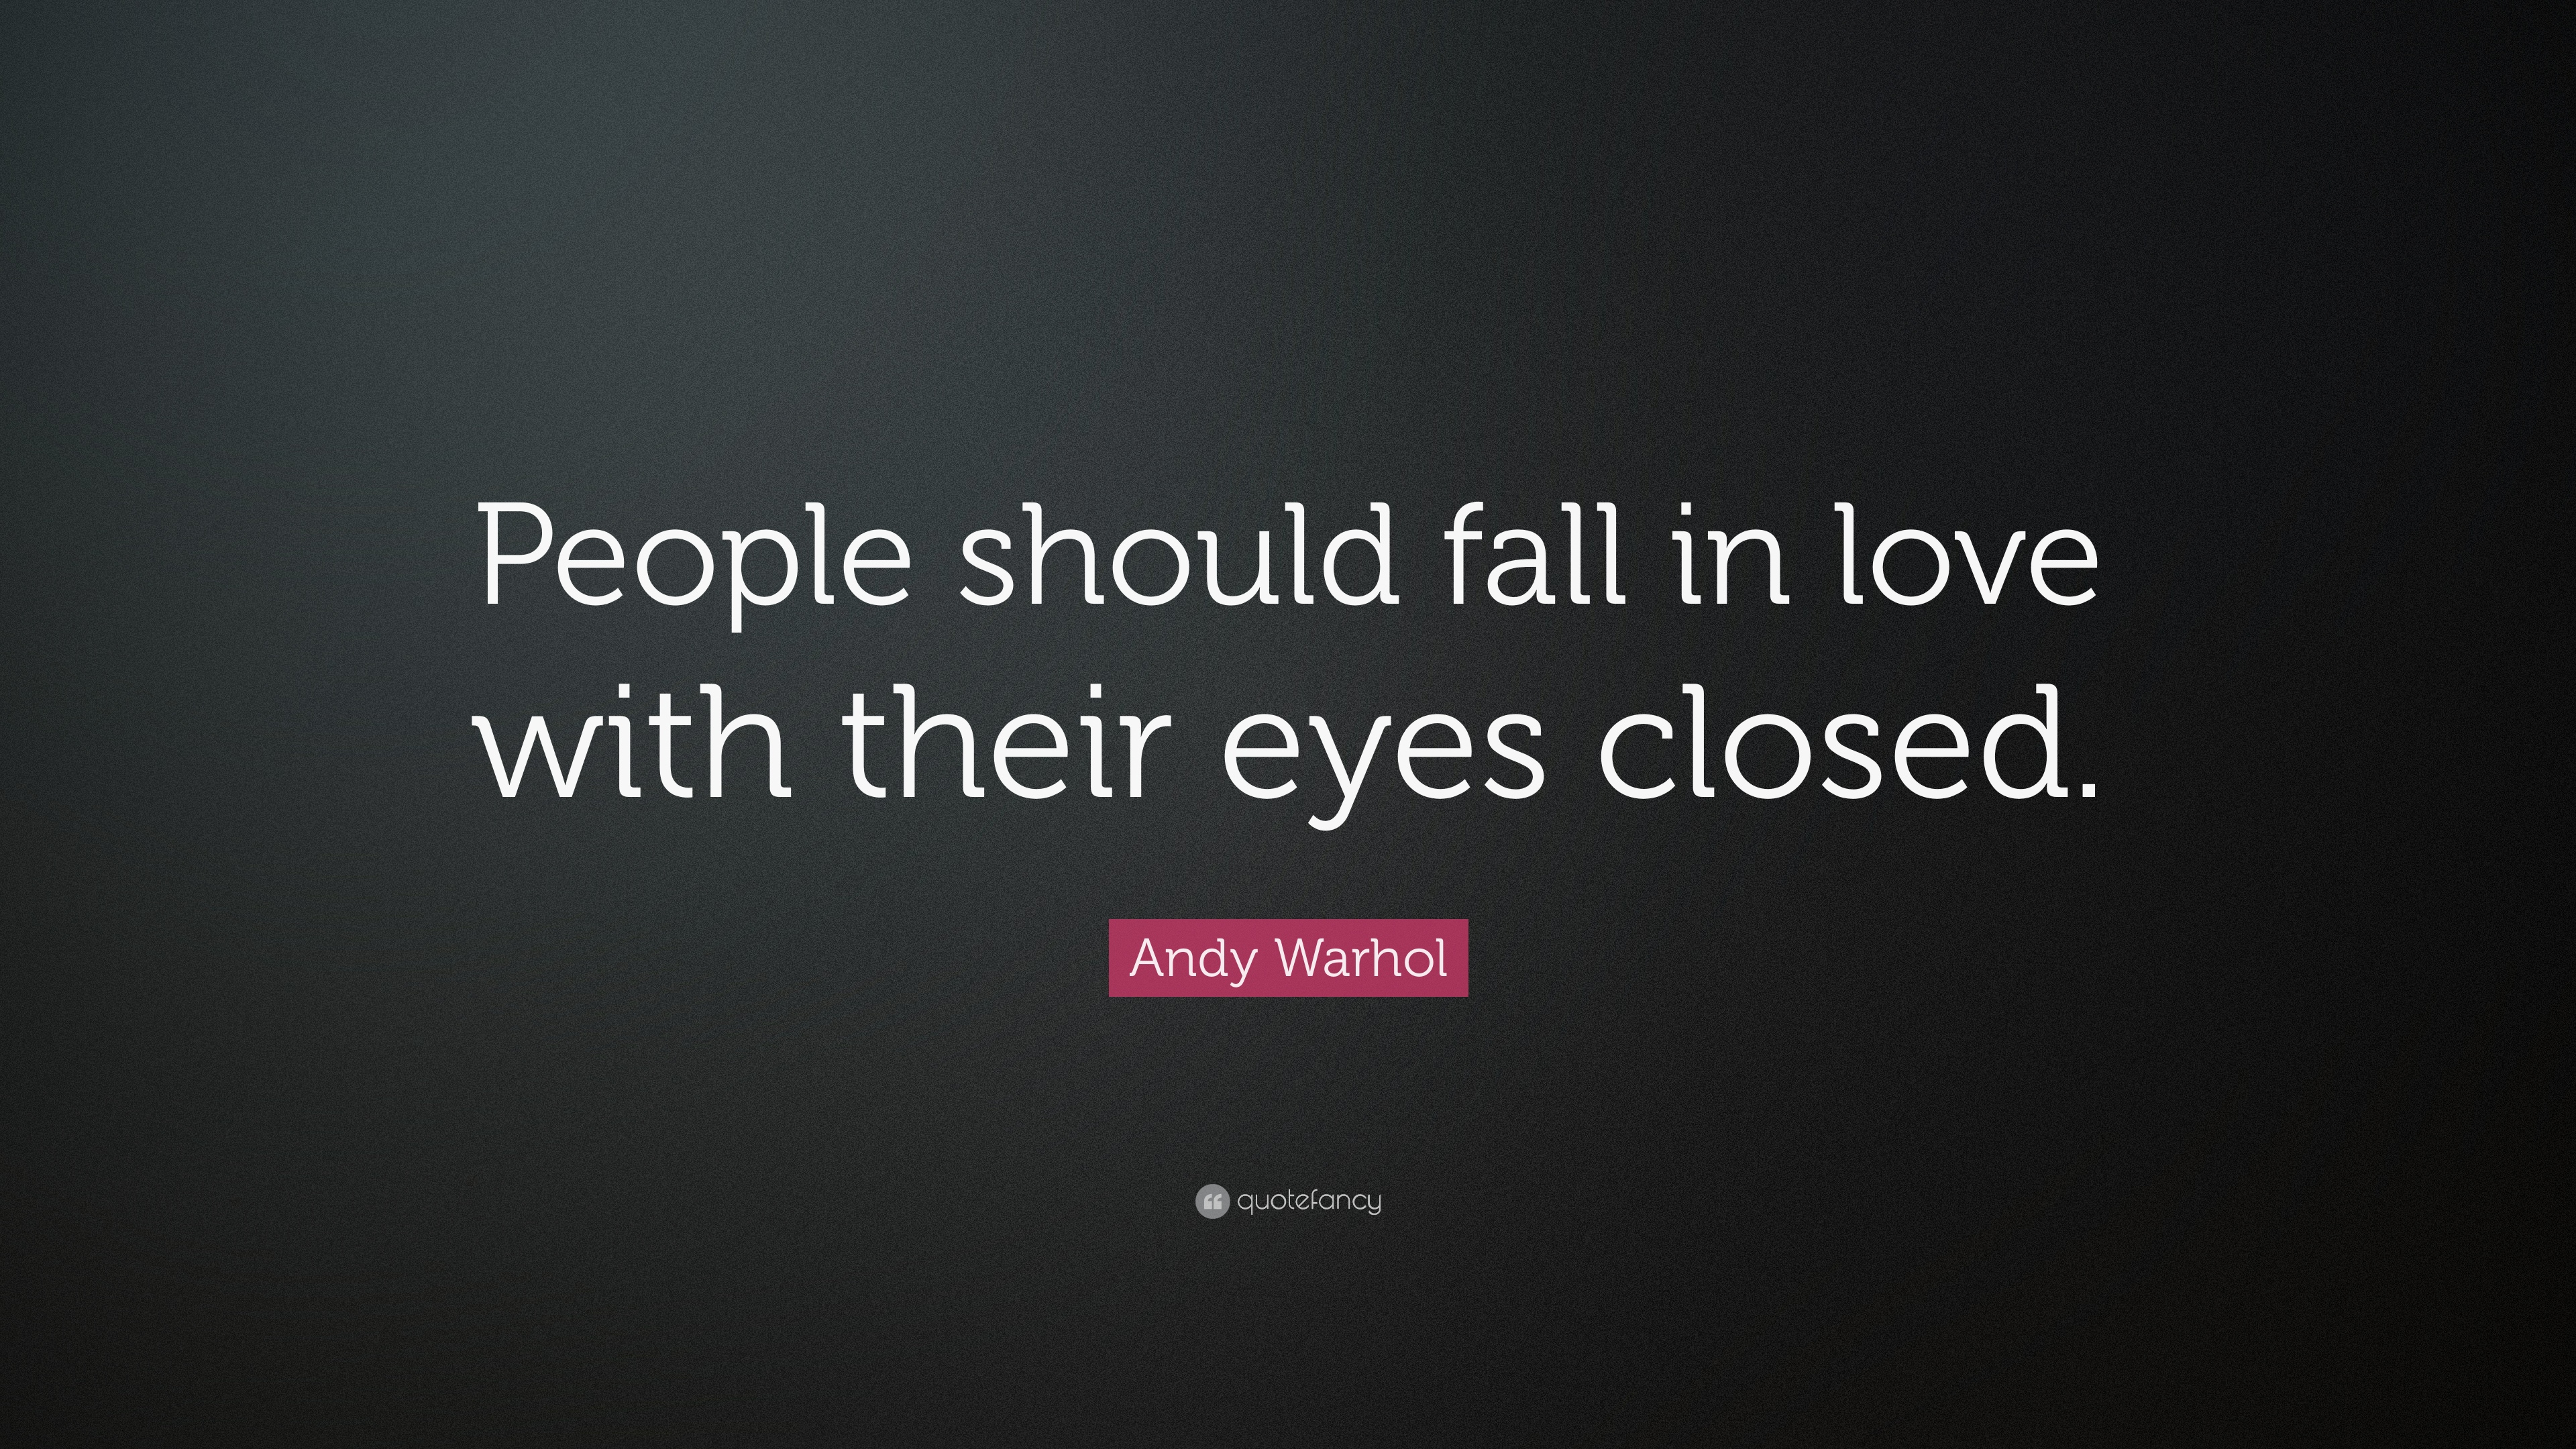 andy warhol quote people should fall in love with their